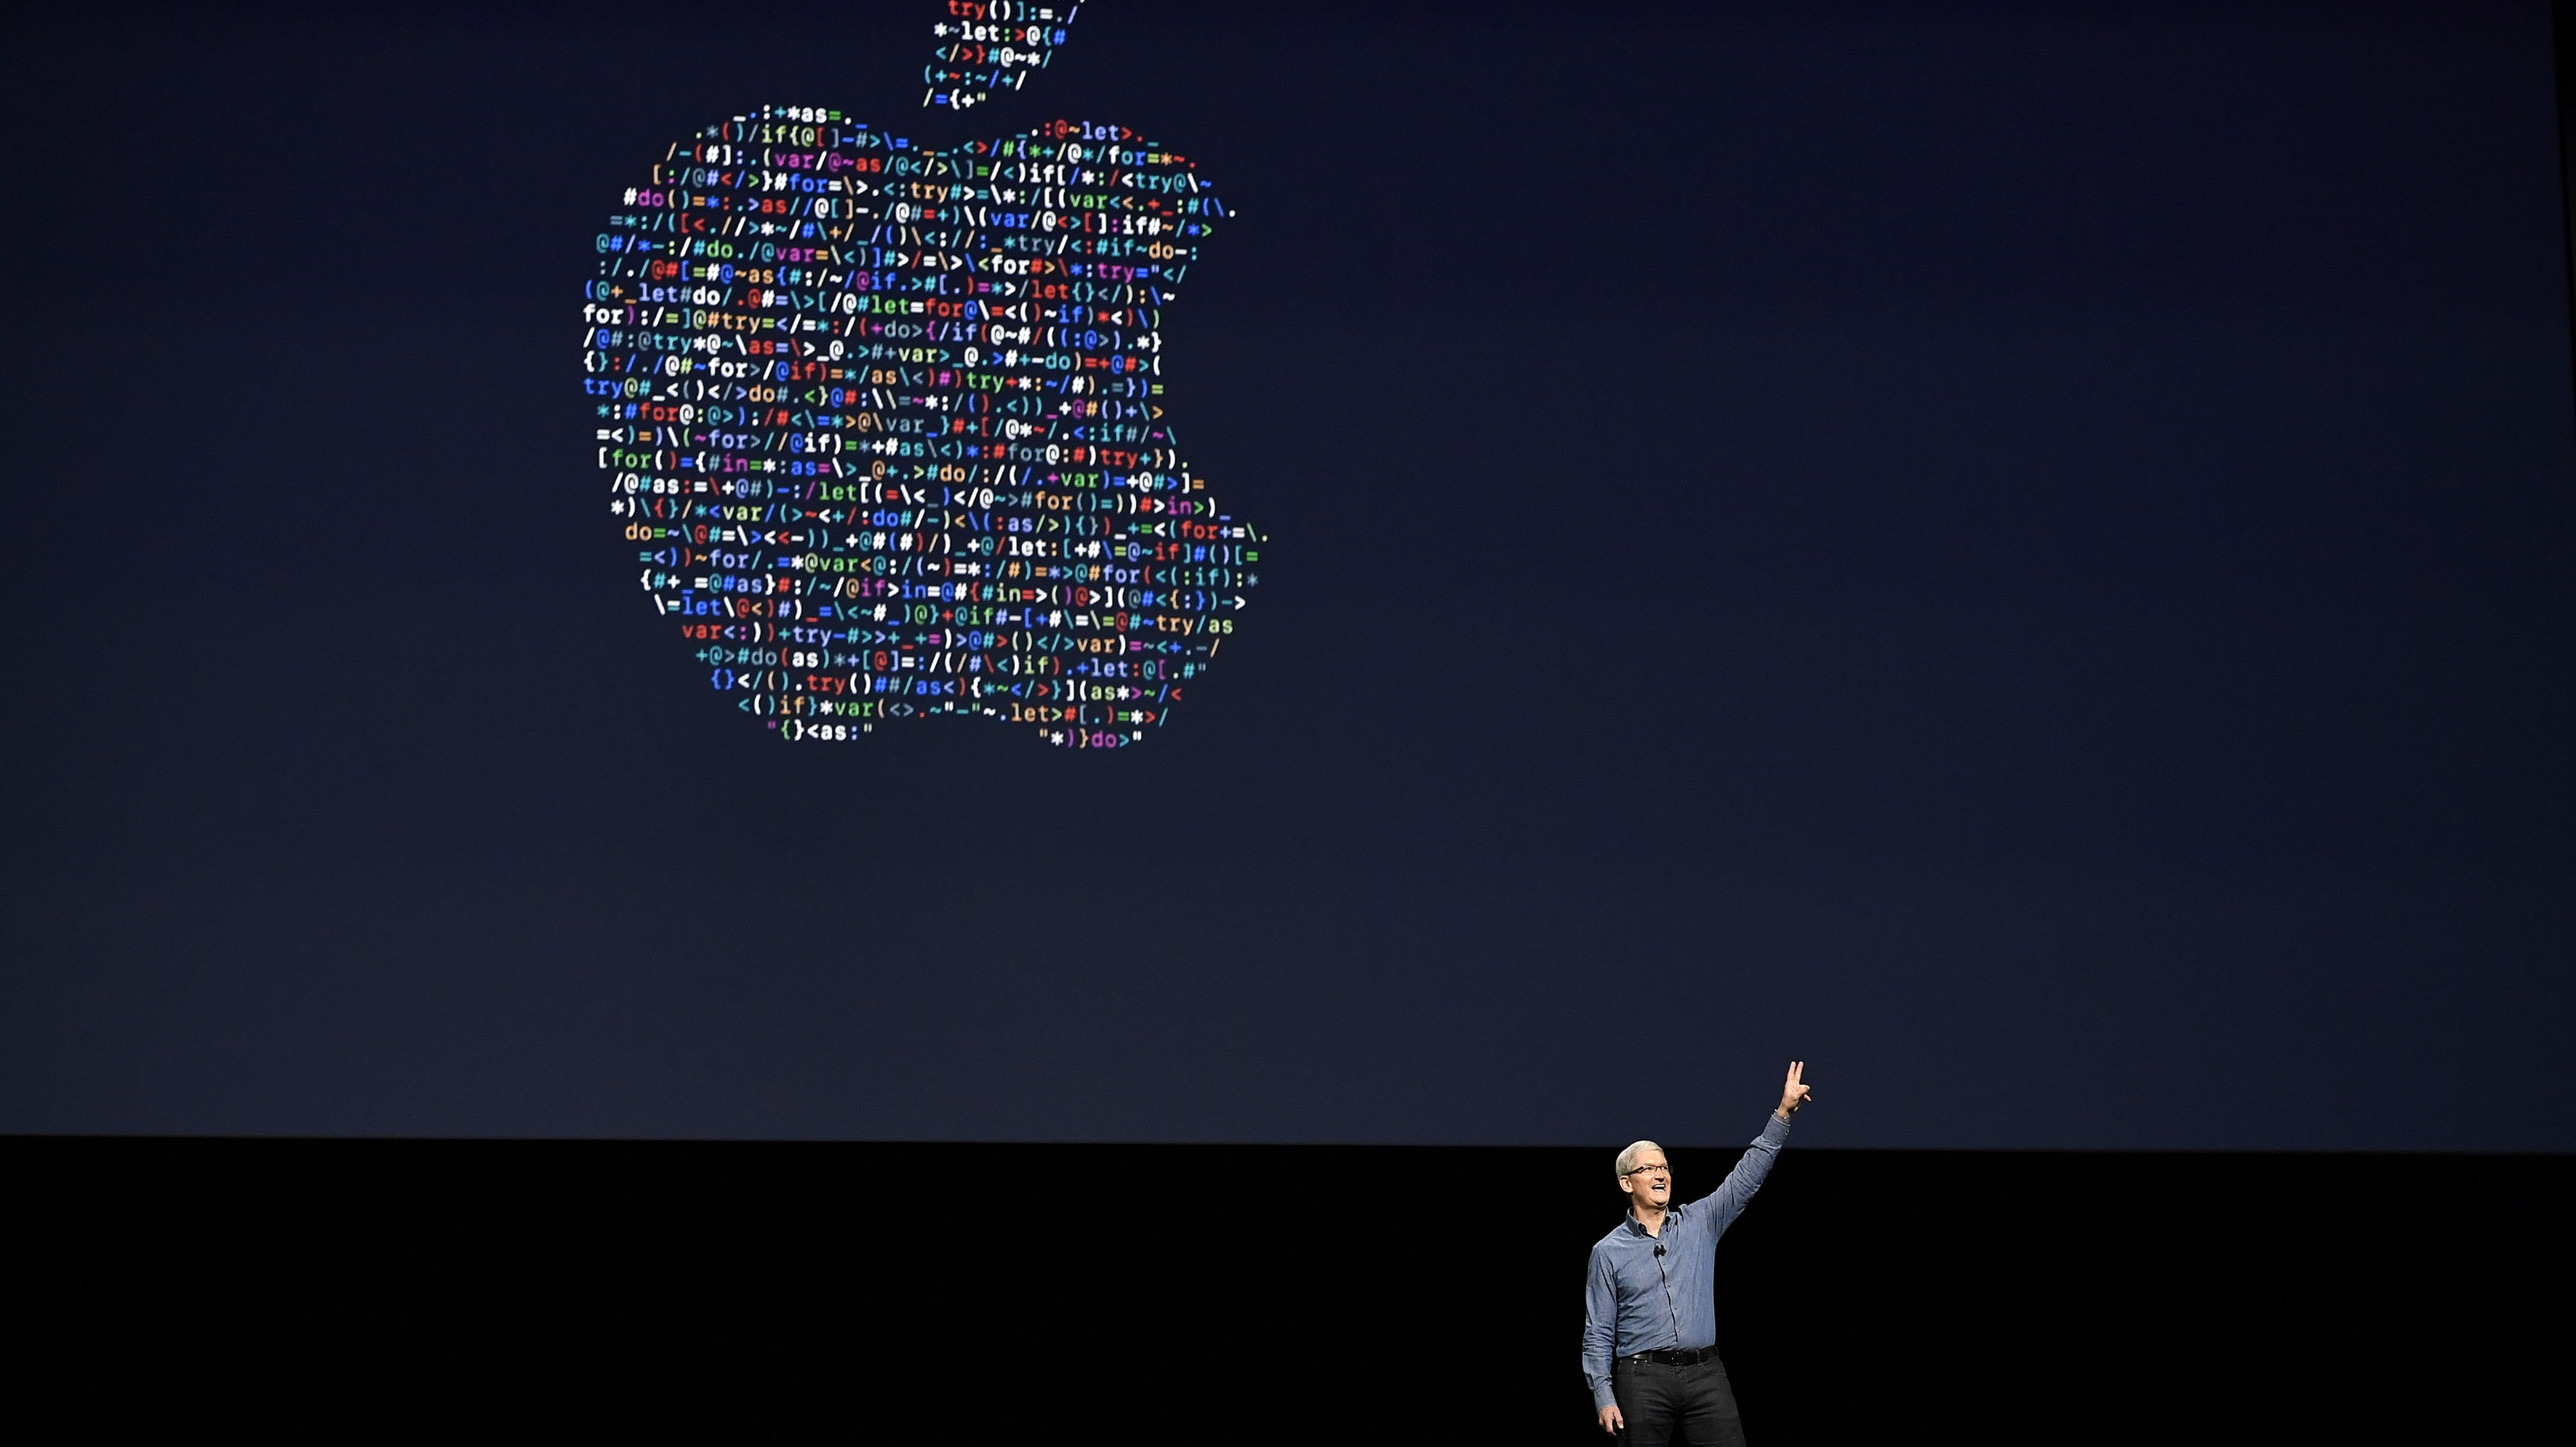 pple CEO Tim Cook waves good bye after speaking at an Apple event at the Worldwide Developer's Conference on June 13, 2016 in San Francisco, California. Thousands of people have shown up to hear about Apple's latest updates.